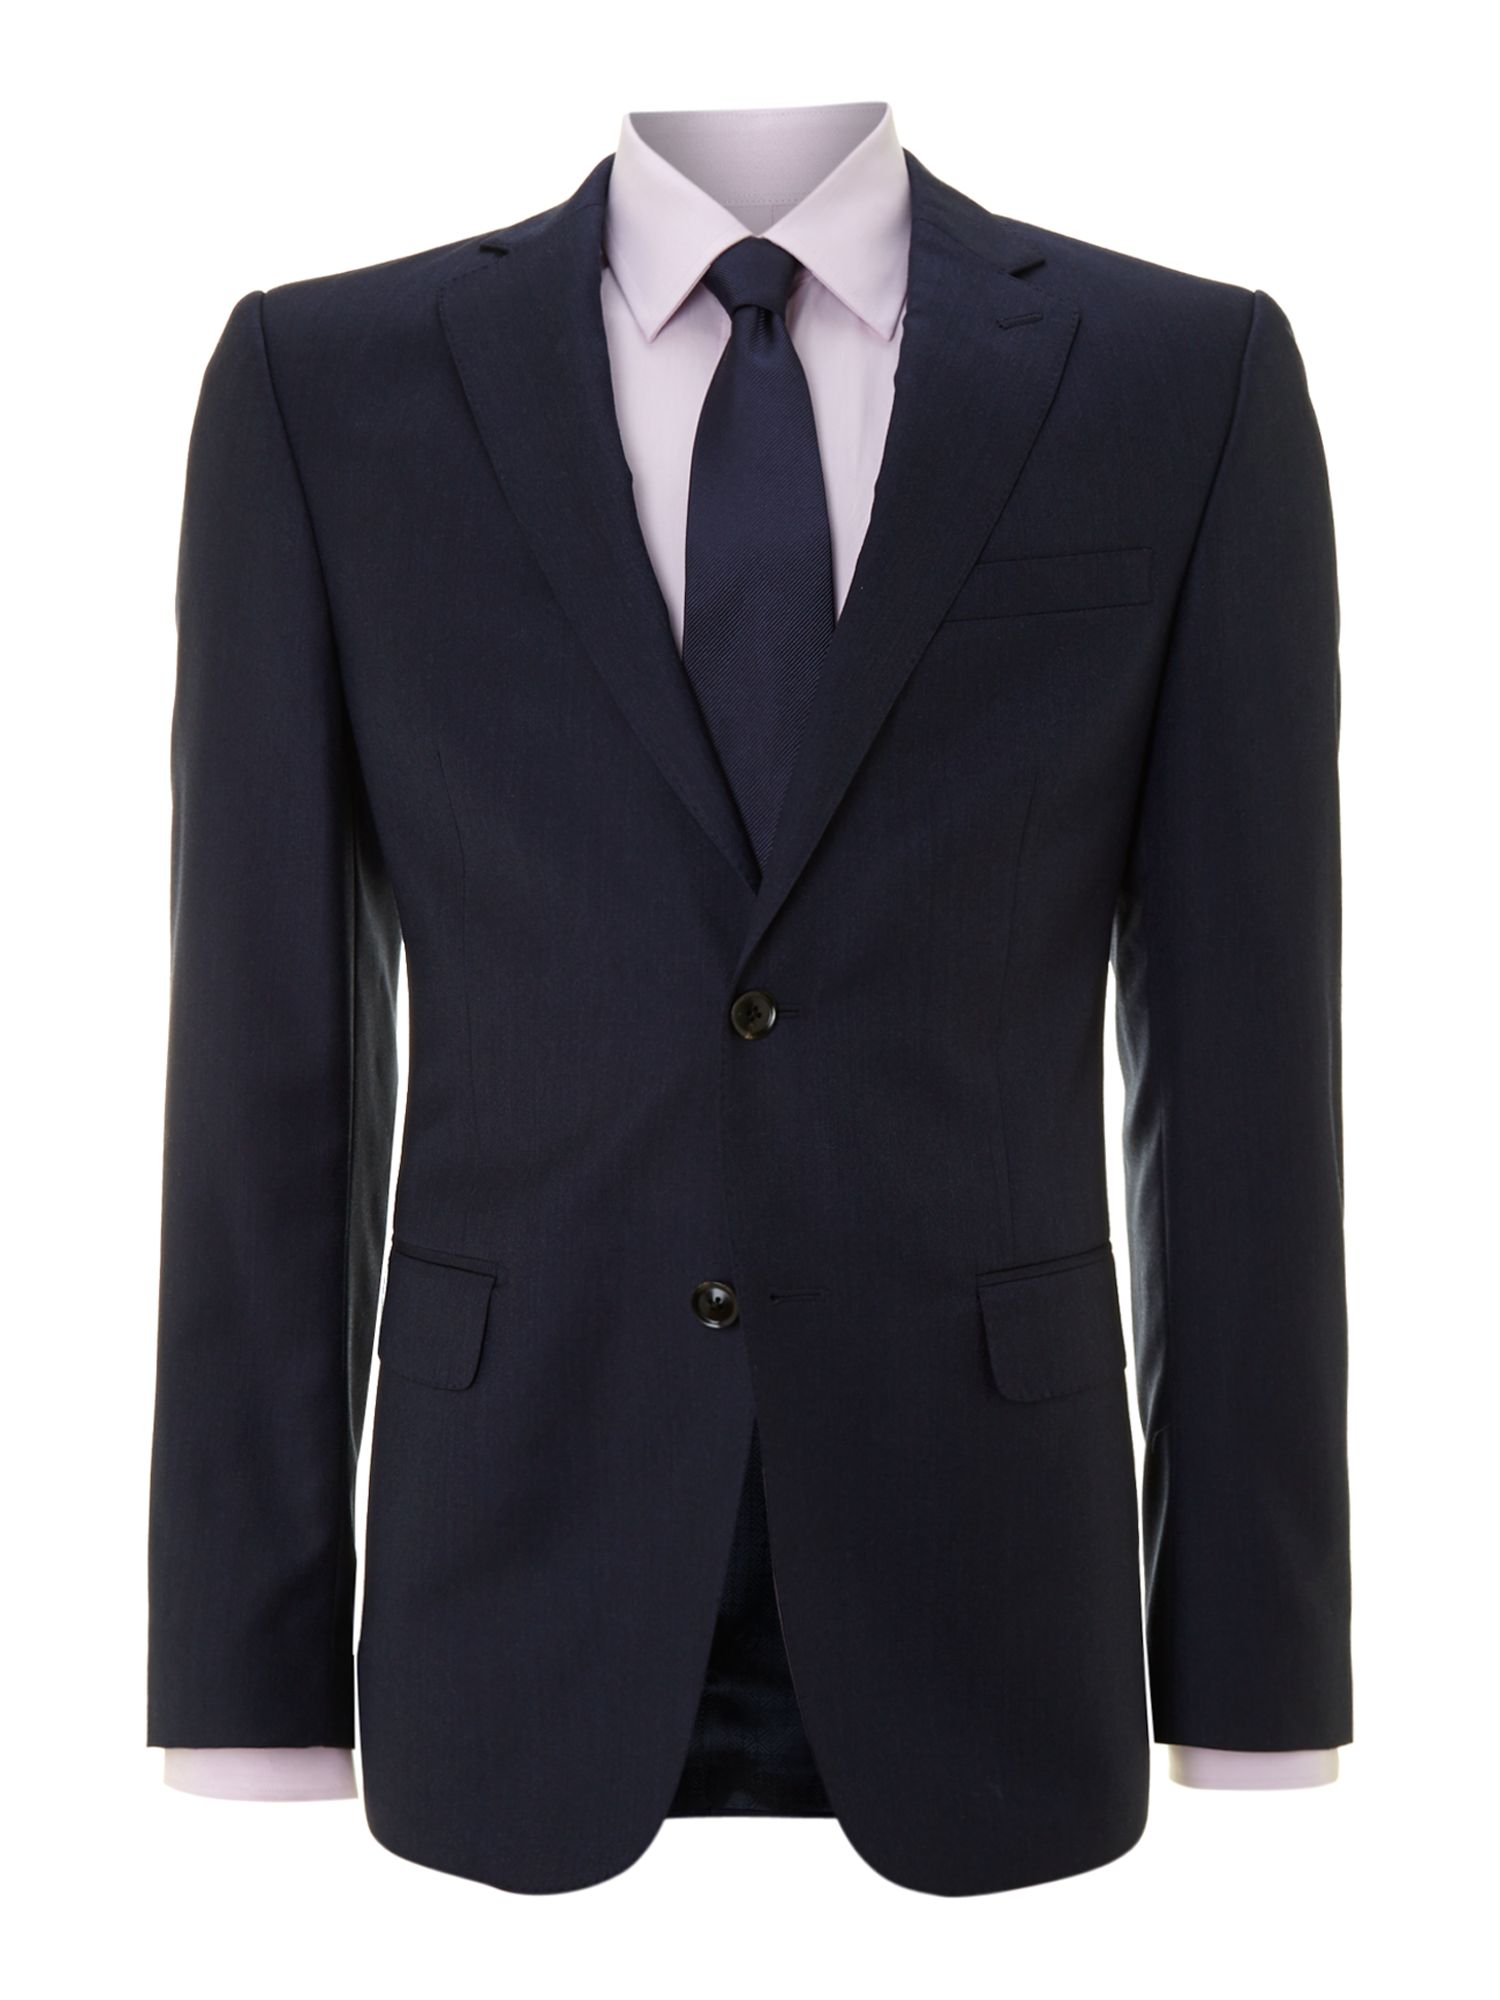 Pindot slimfit suit jacket with peak lapels